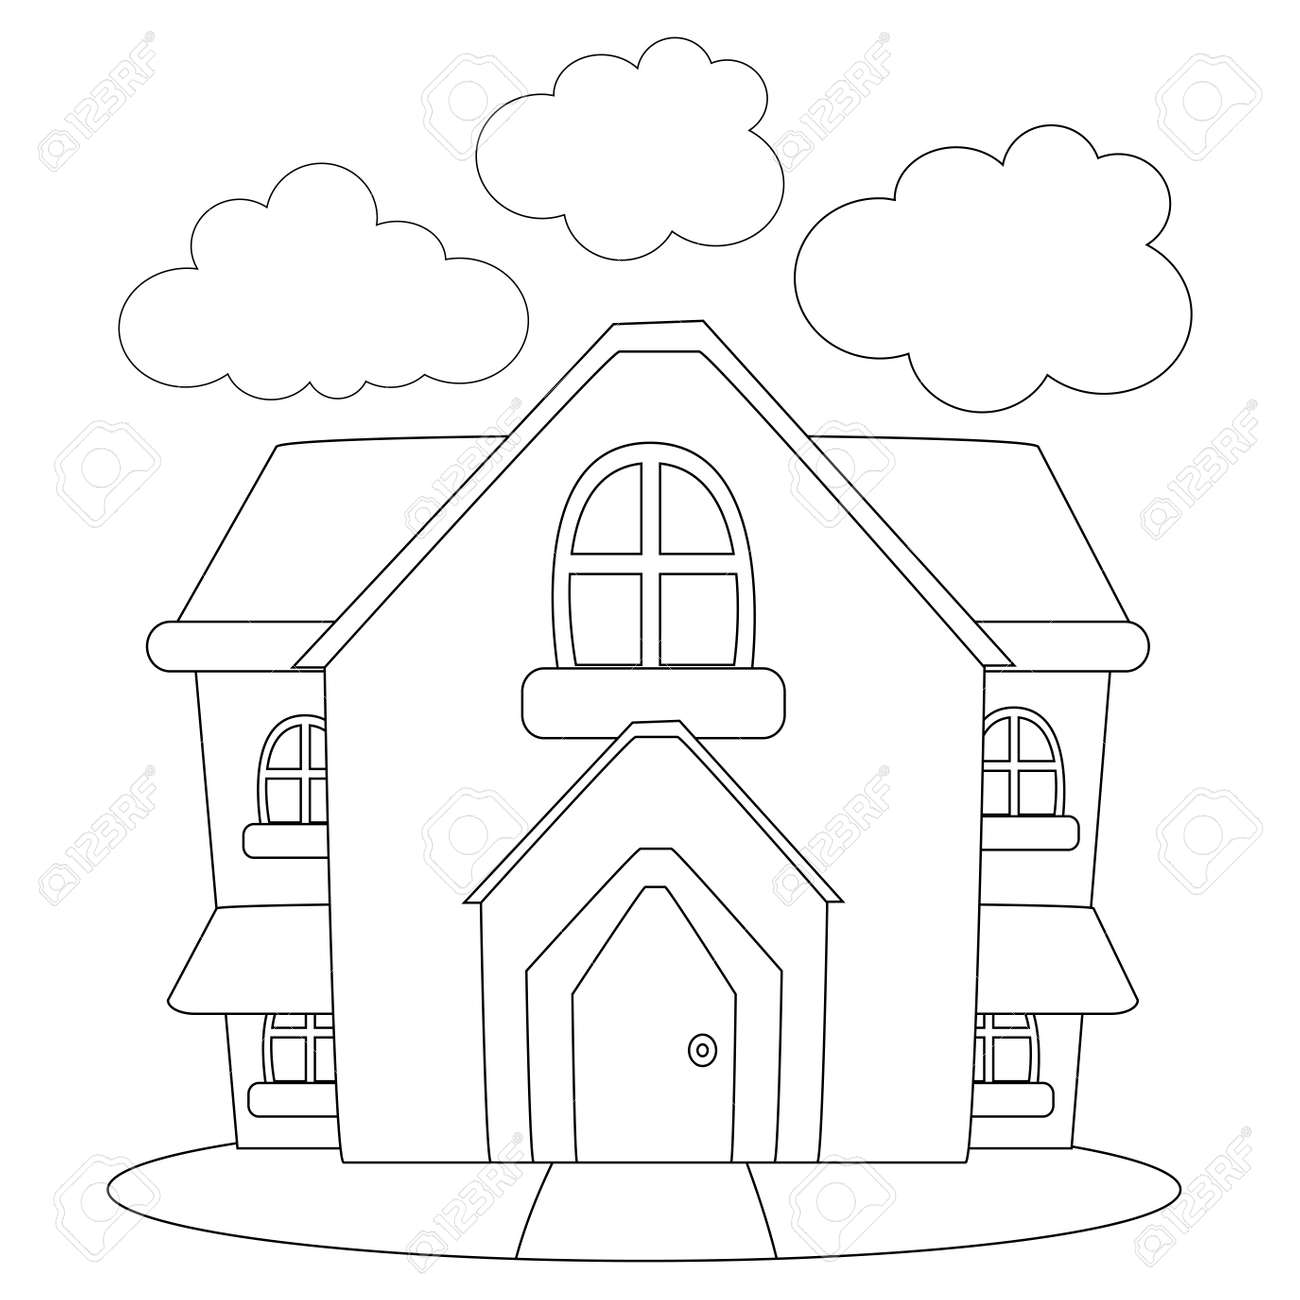 Coloring Book Outlined House Stock Vector